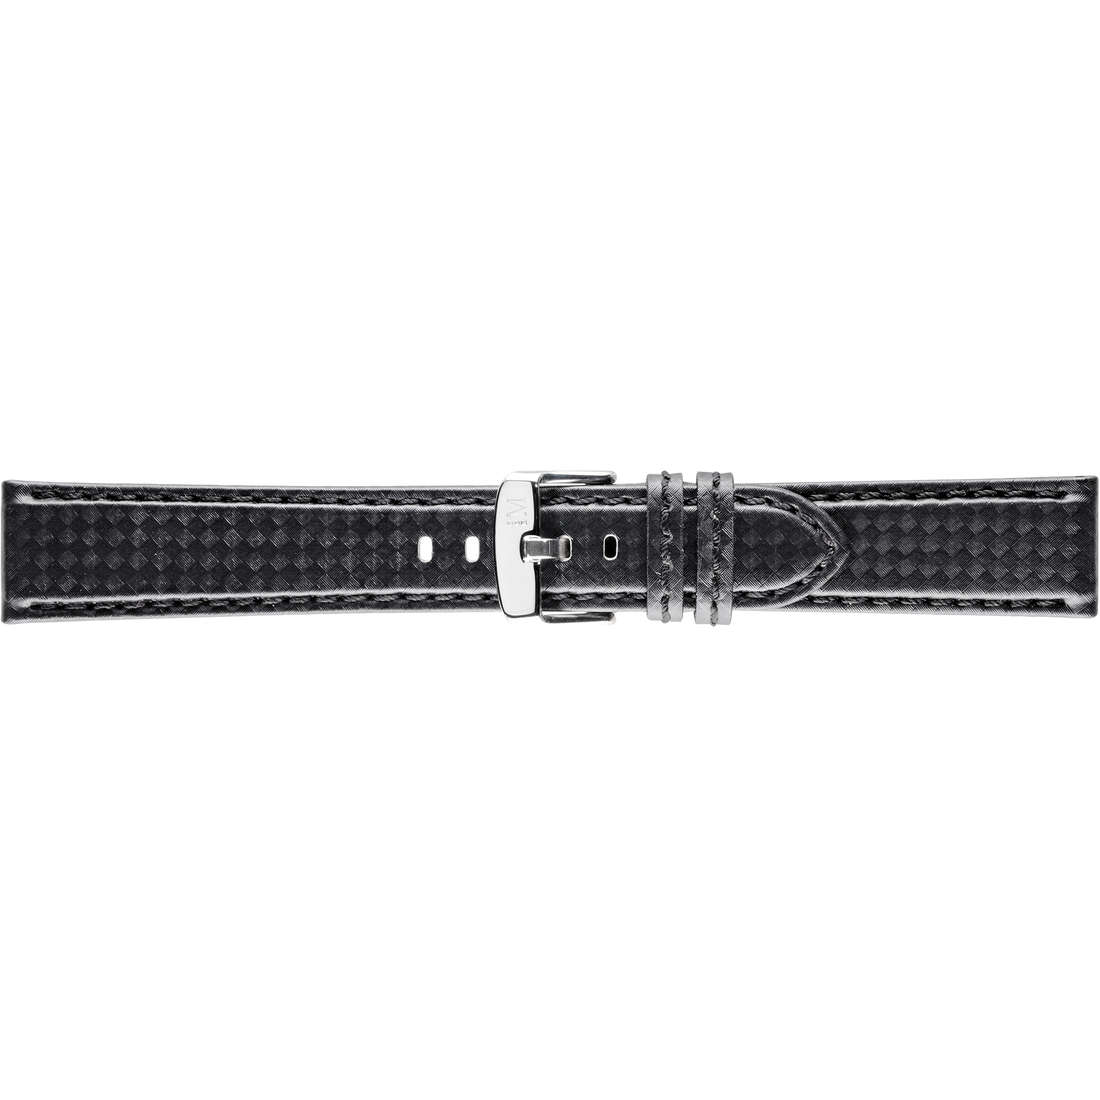 watch watch bands watch straps man Morellato Linea Sport A01U3586977819CR24